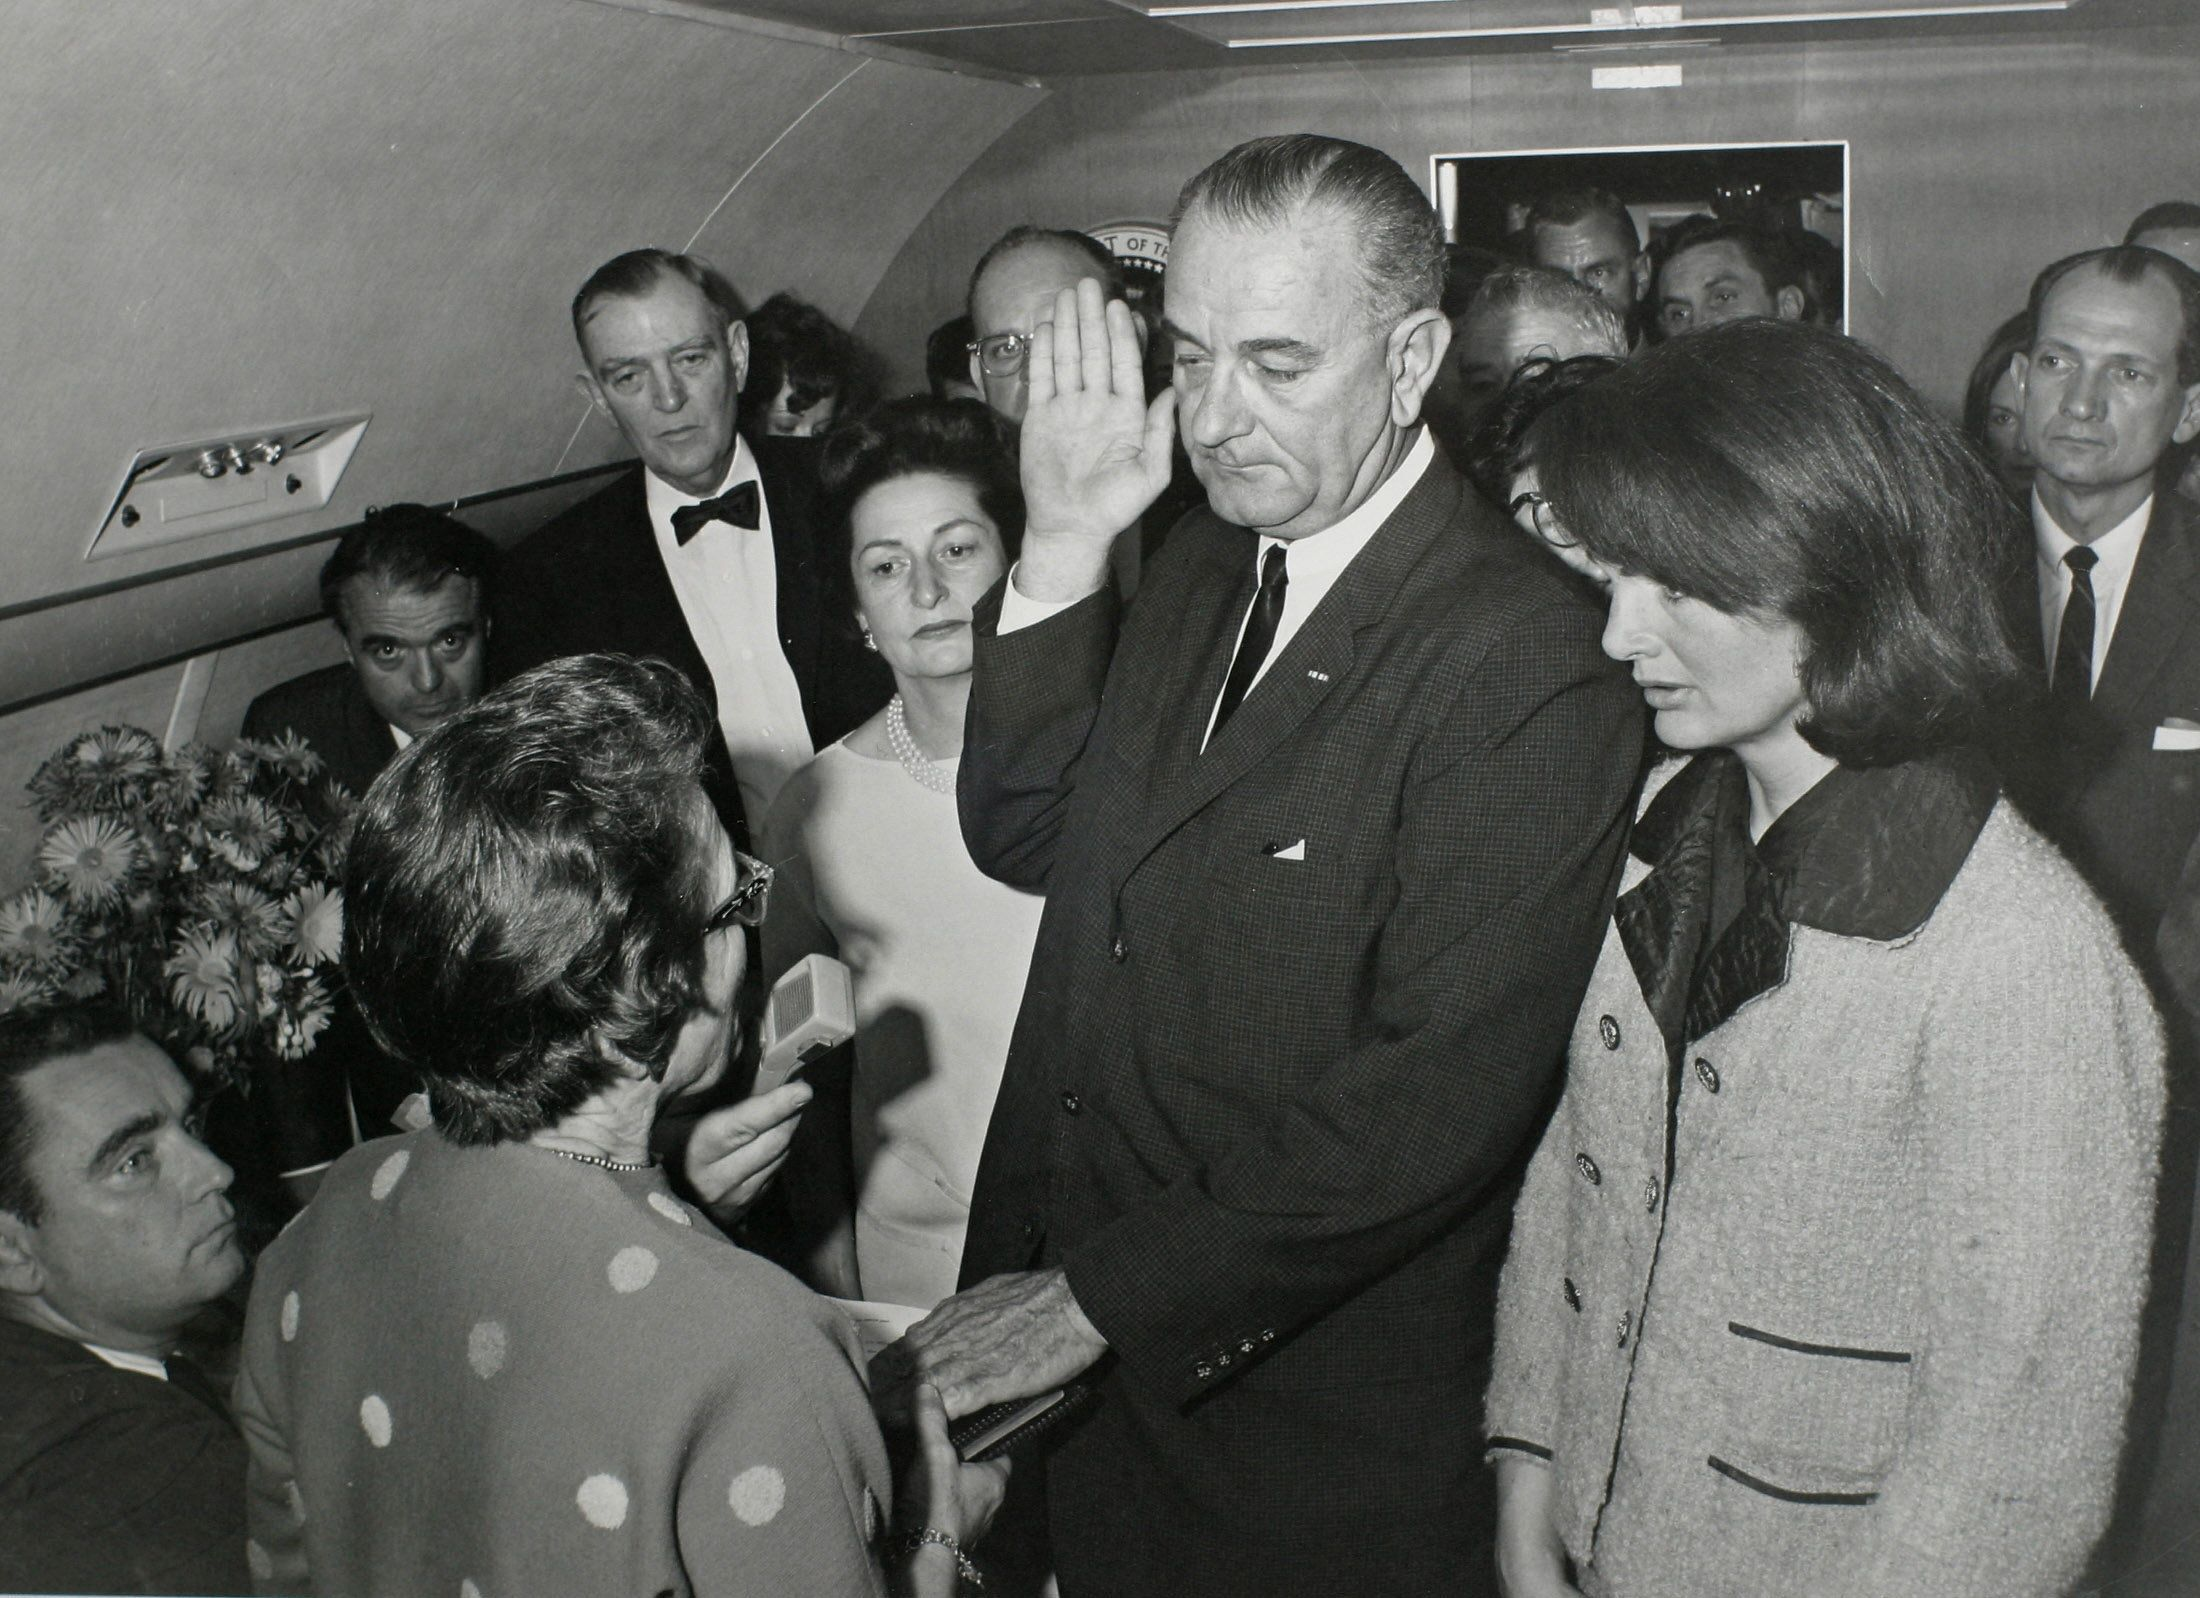 - PHOTO TAKEN 22NOV1963 - U.S. Vice President Lyndon Baines Johnson (C) takes the presidential oath of office from Judge Sarah T. Hughes (2nd from L) as President John F. Kennedy's widow first lady Jacqueline Bouvier Kennedy (2nd from R) stands at his side aboard Air Force One at Love Field in Dallas, Texas just two hours after Kennedy was shot in this November 22, 1963 photo by White House photographer Cecil Stoughton provided by the John F. Kennedy Presidential Library in Boston. Attending the swearing in are Assistant Presidential Press Secretary Malcolm Kilduff (L-front), Special Assistant to the President Jack Valenti (L-Rear), U.S. Congressman Albert Thomas (2nd from L-Rear) and U.S. Congressman Jack Brooks (Far R). The fortieth anniversary of Kennedy's assassination will be on November 22, 2003.  &W ONLY ??? USE ONLY (Credit :JFK Library/Cecil Stoughton/The White House)